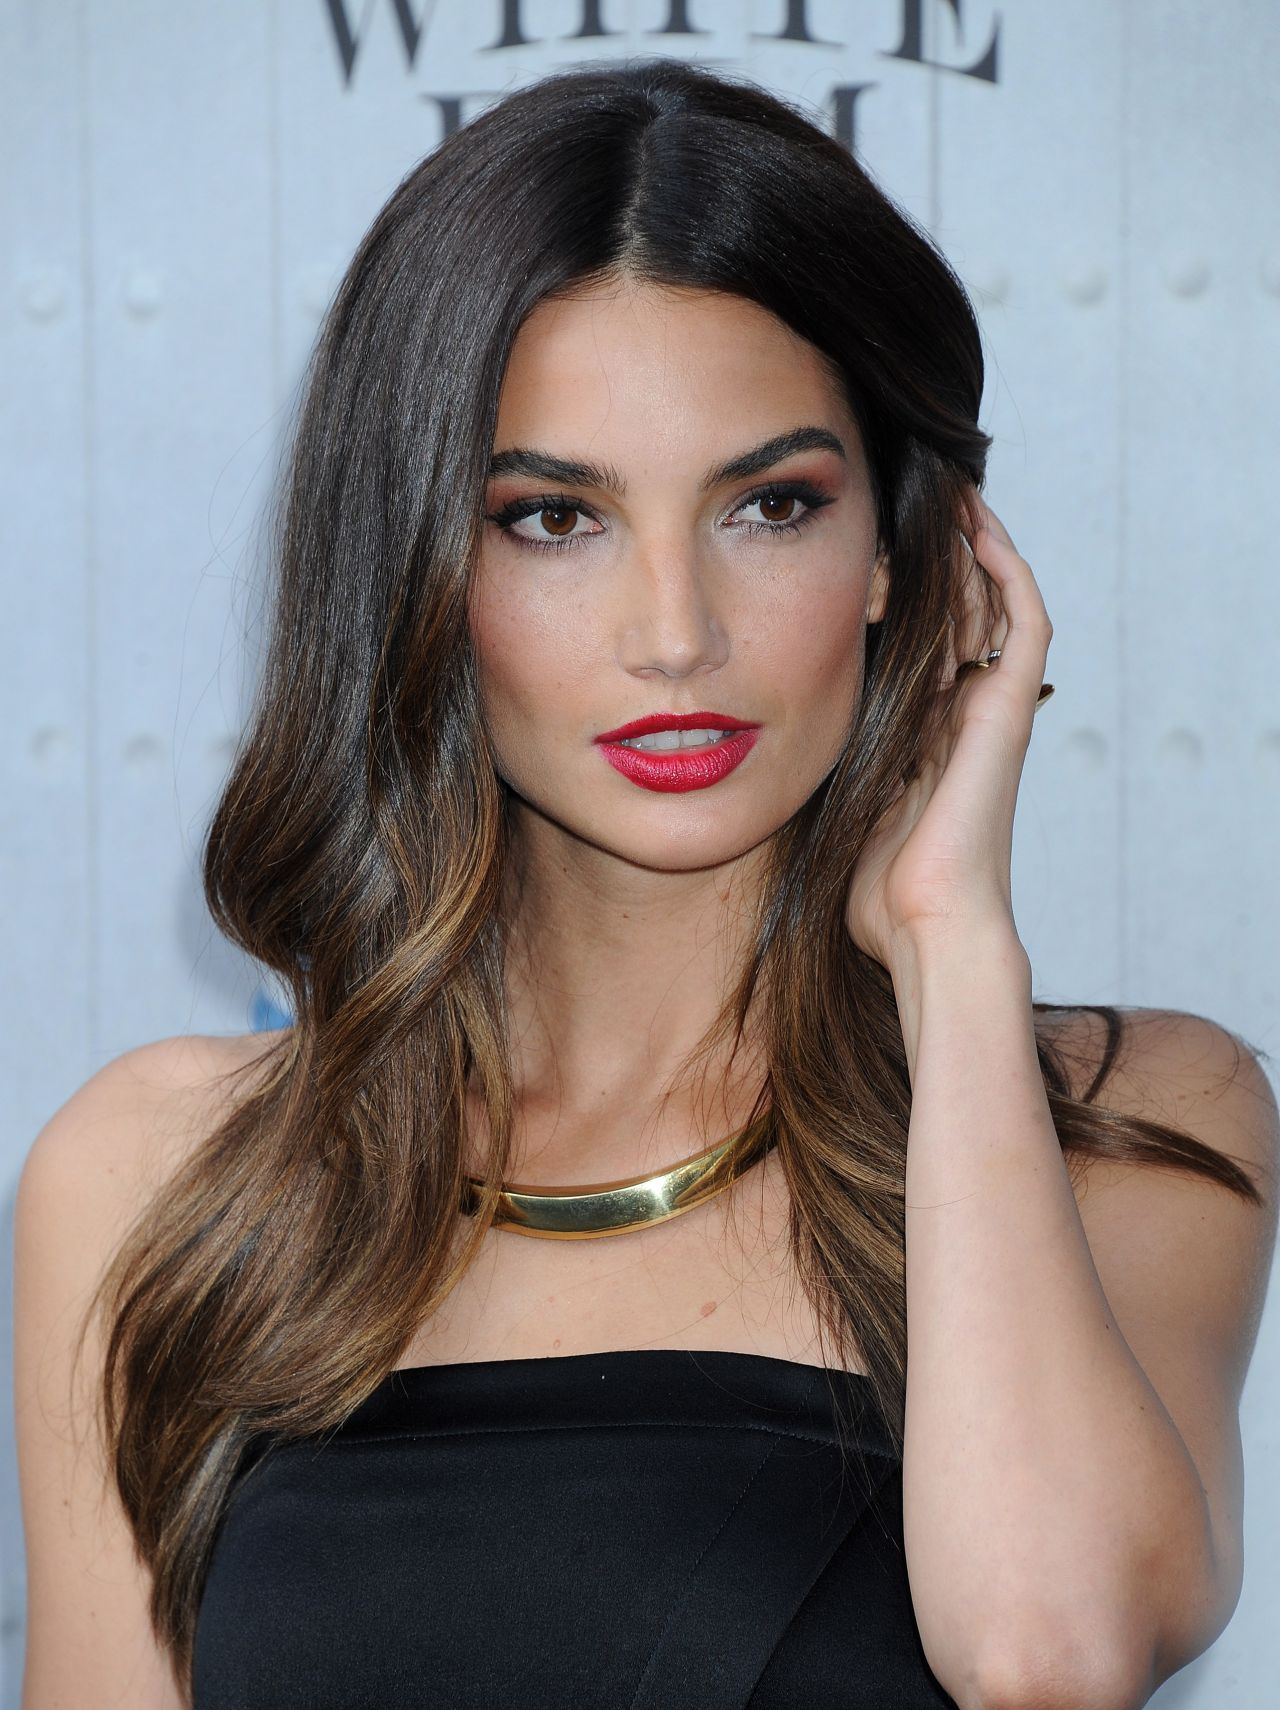 http://celebmafia.com/wp-content/uploads/2014/06/lily-aldridge-2014-spike-tv-s-guys-choice-awards_8.jpg